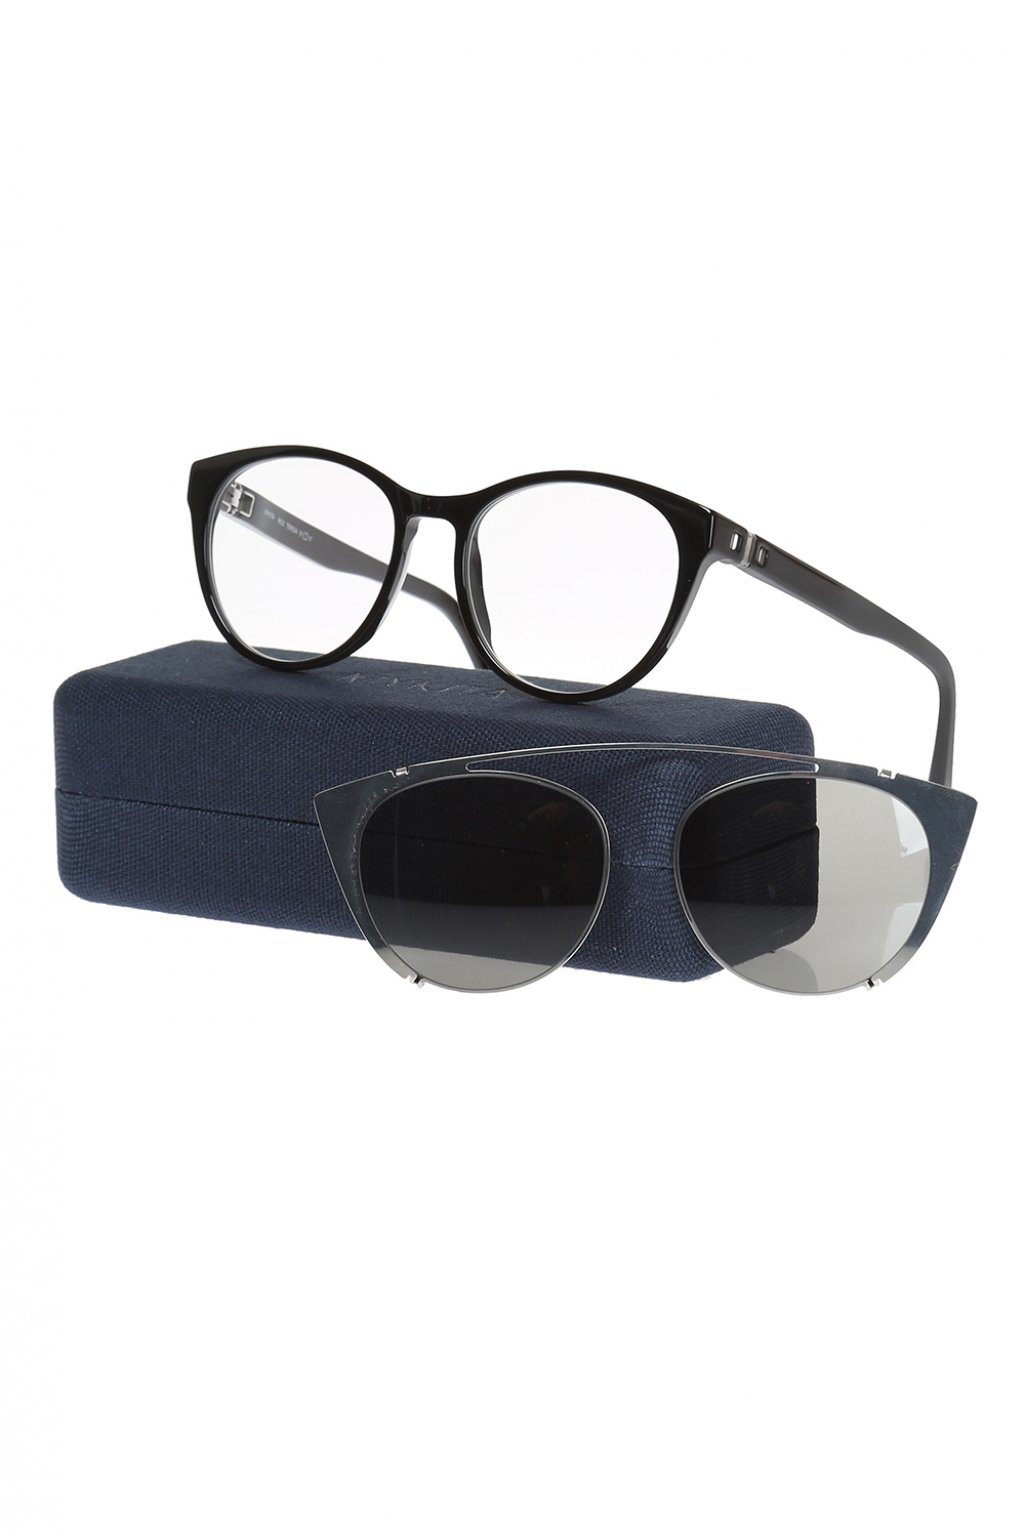 Mykita 'Teresa' optical frame with shades